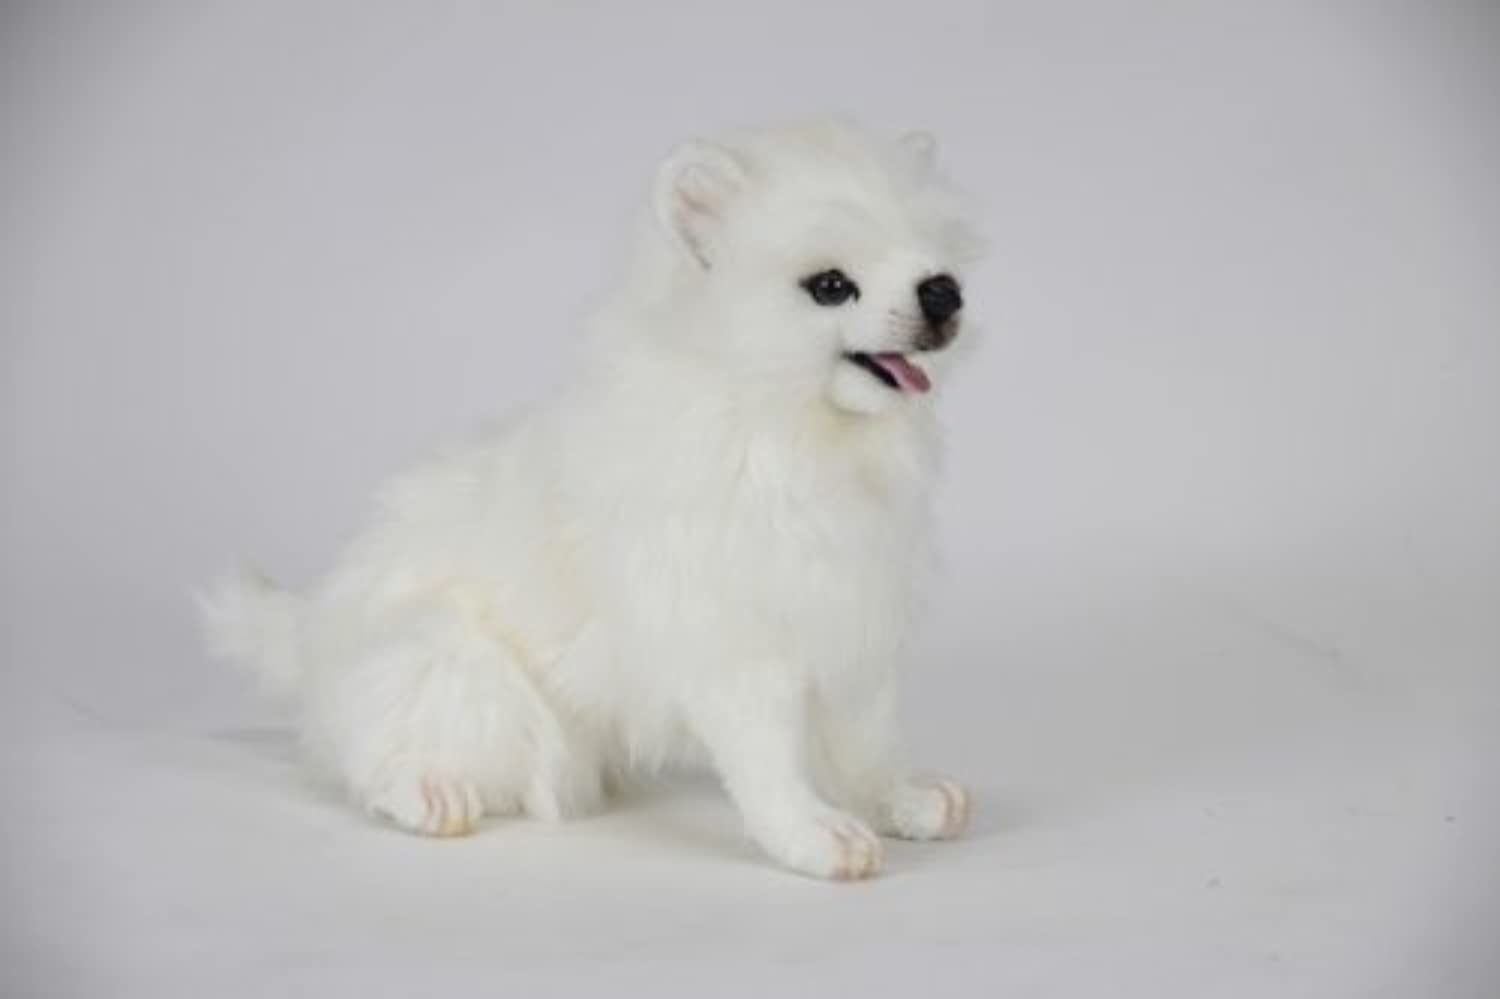 alto descuento Samoyed Samoyed Samoyed Puppy 11 l by Hansa  toma